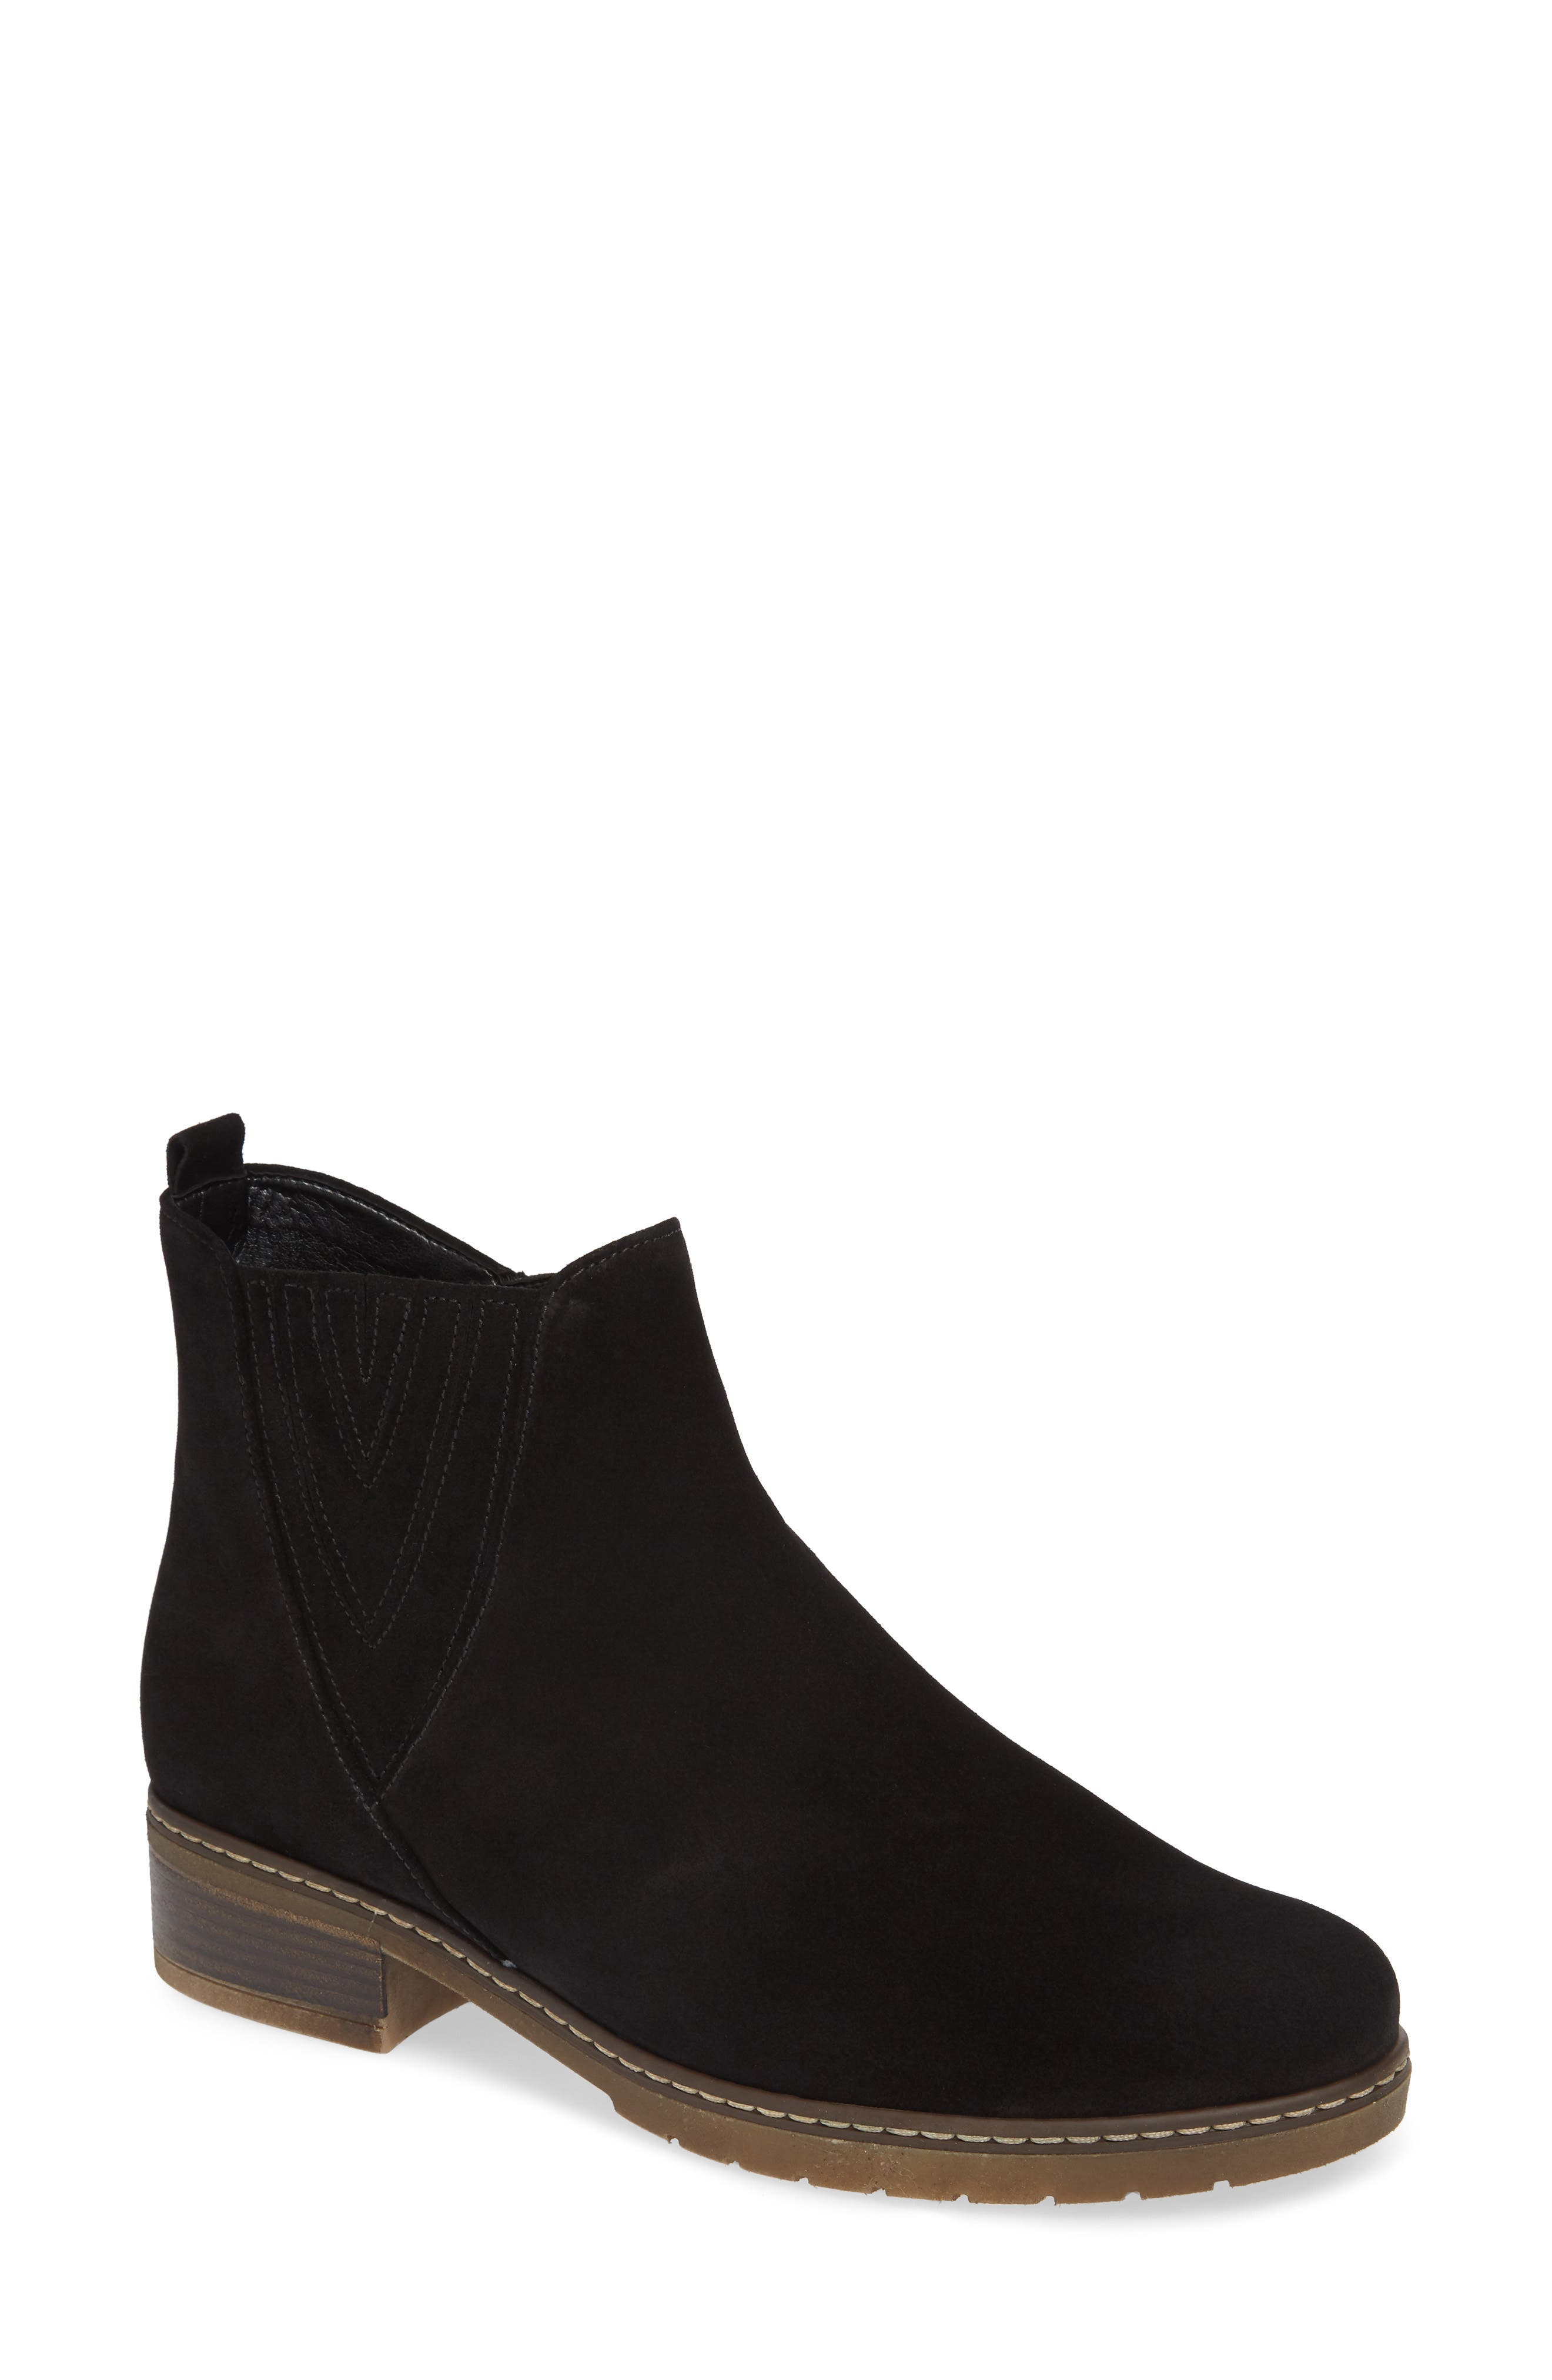 Ankle Booties Boots Nordstrom amp; Gabor Women's qz8O01w